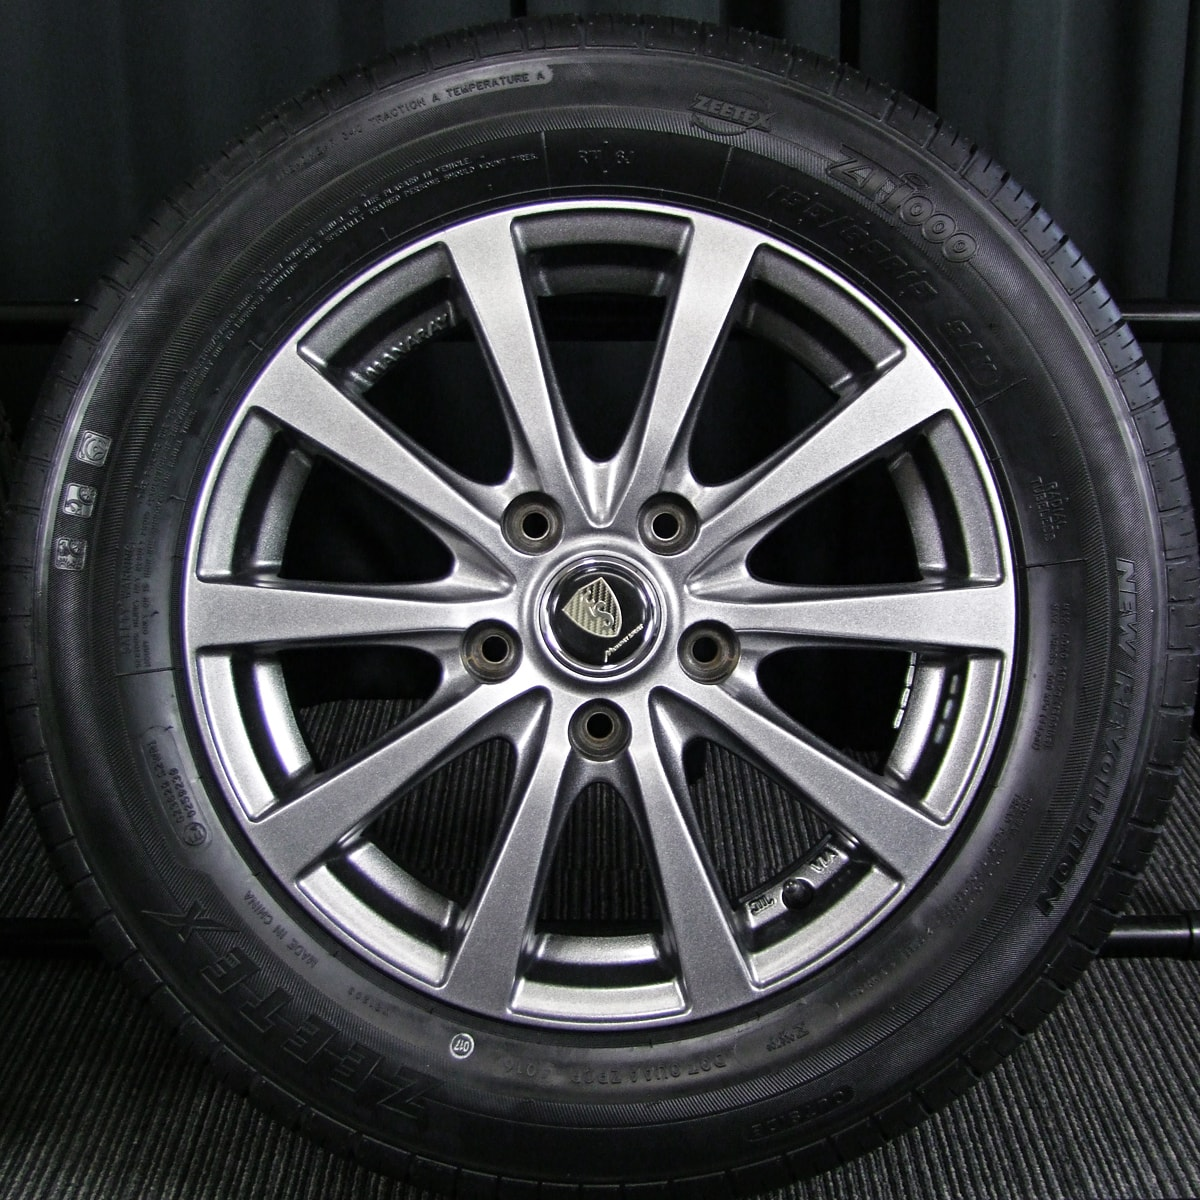 MANARAY SPORT EUROSPEED G-10 ダークシルバー ZEETEX ZT1000 195/65R15 4本SET